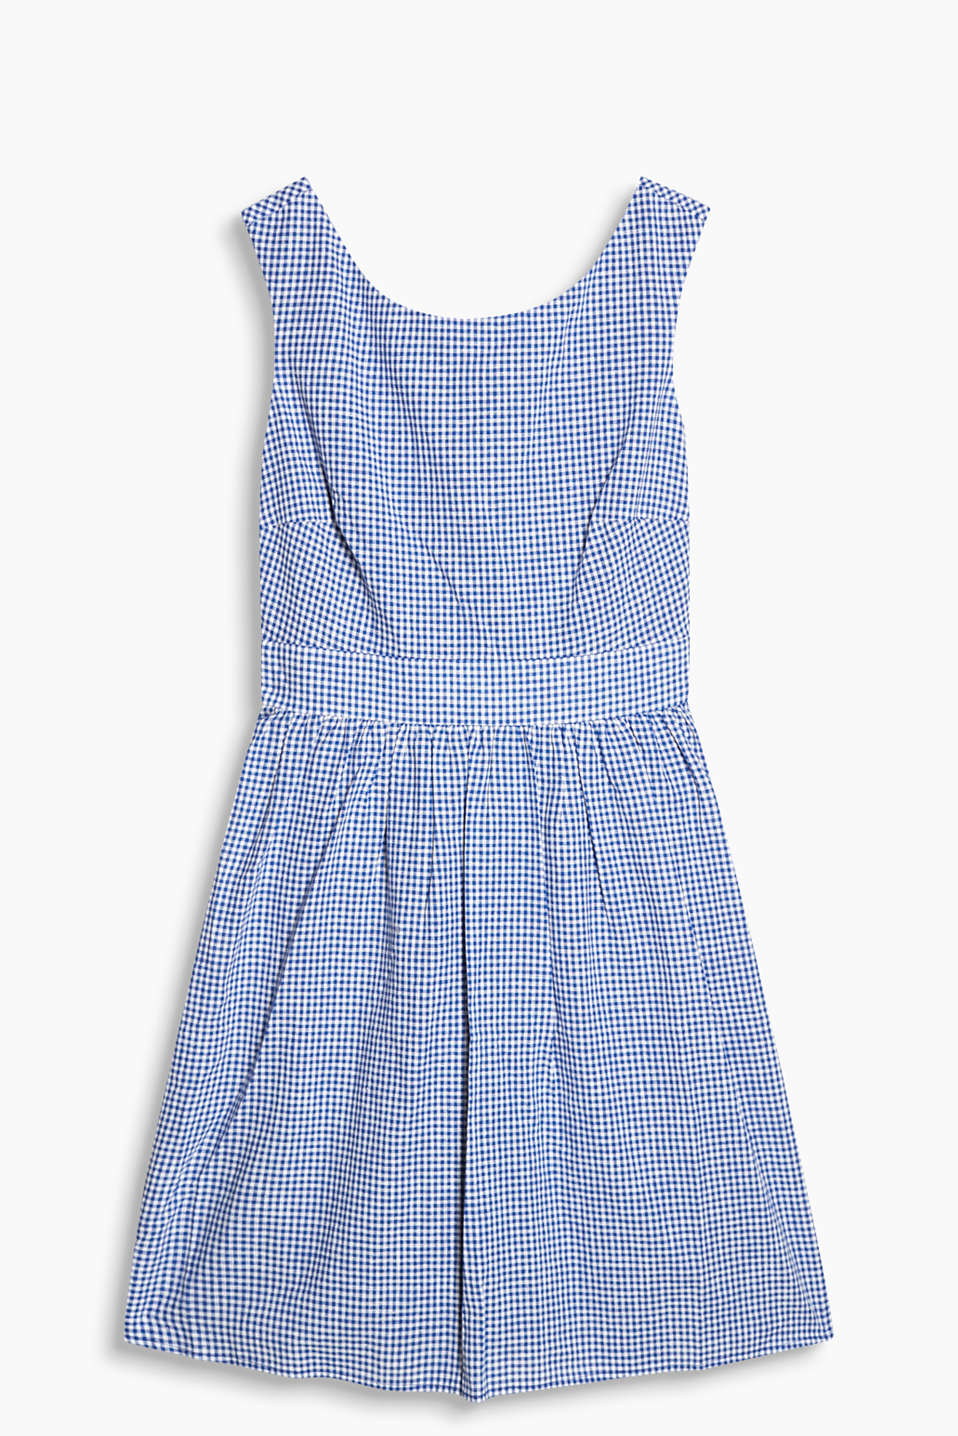 Airy dress with fine gingham checks and a bow at the back, blended linen